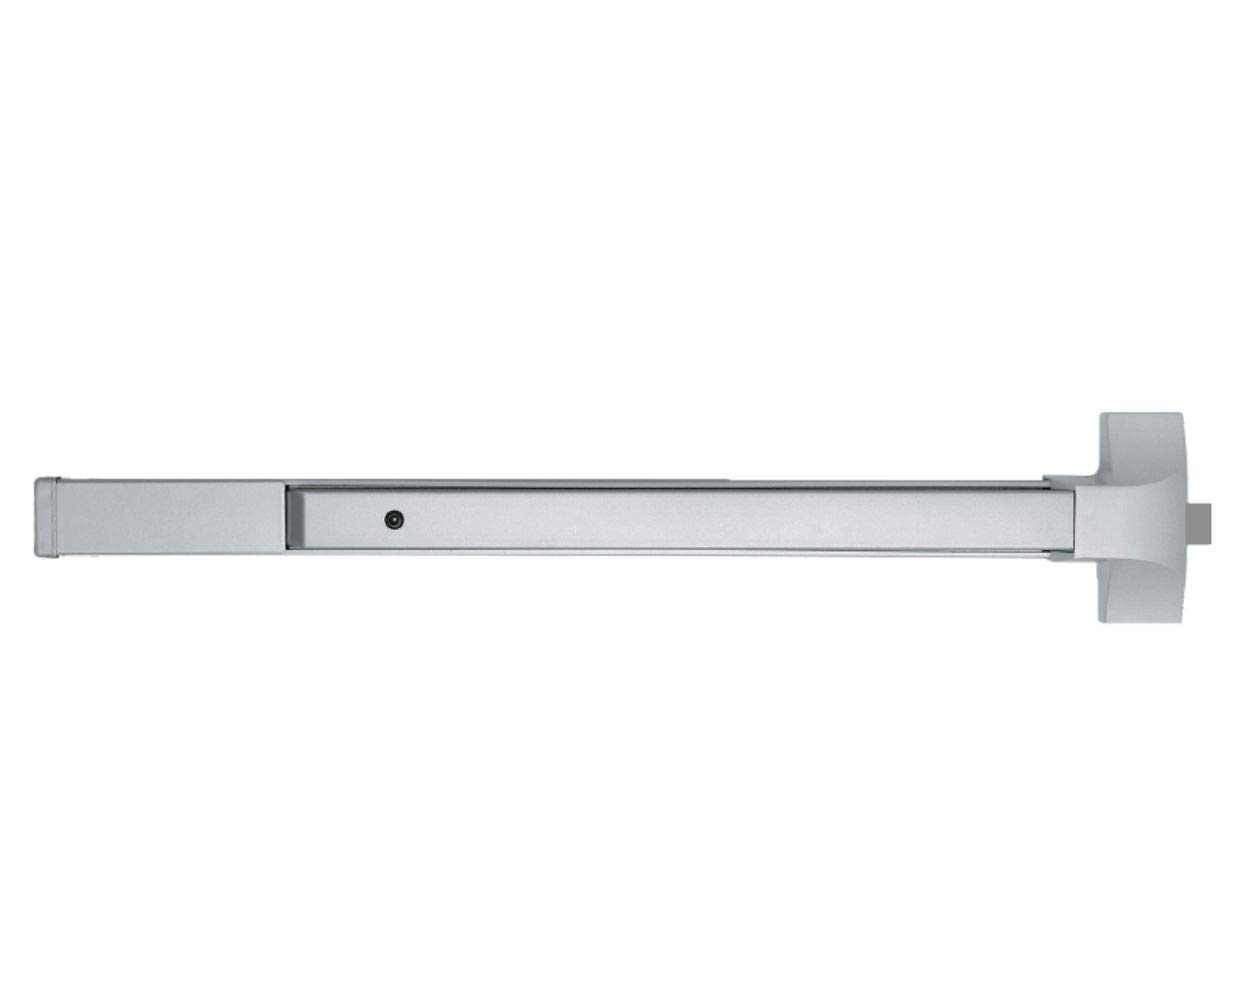 Cal-Royal 36'' Push Bar Panic Exit Device, Aluminum